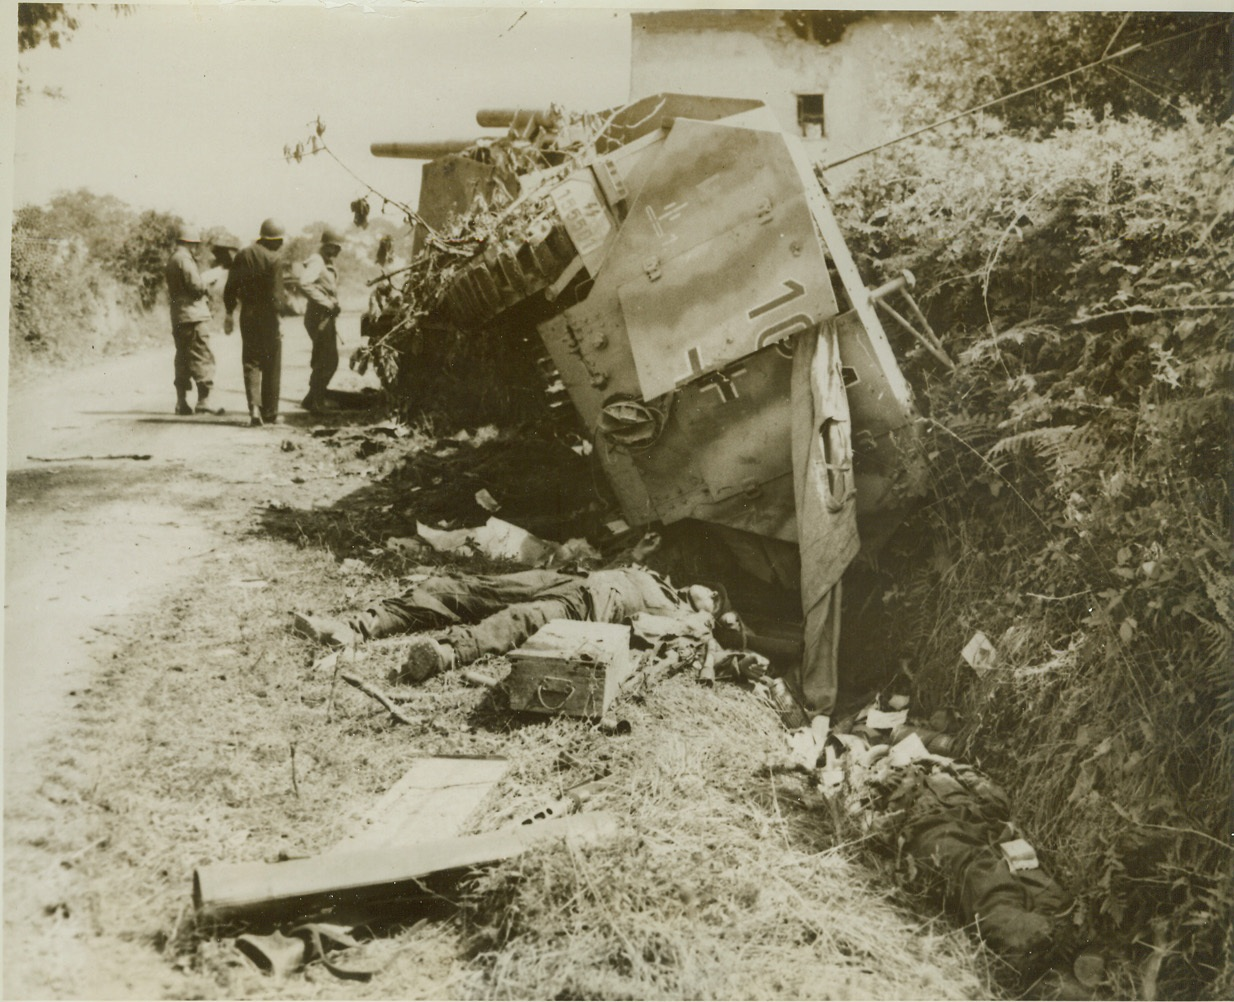 Where Nazi Panzers Were Trapped, 8/3/1944. France—Wrecked German armored vehicles and their dead crew members lie along this road in Roncey, where they were trapped by American troops and destroyed by supporting Allied fighters and rocket bombers. The U.S. Second Armored Division sprung the trap on the Nazis. Credit: ACME;